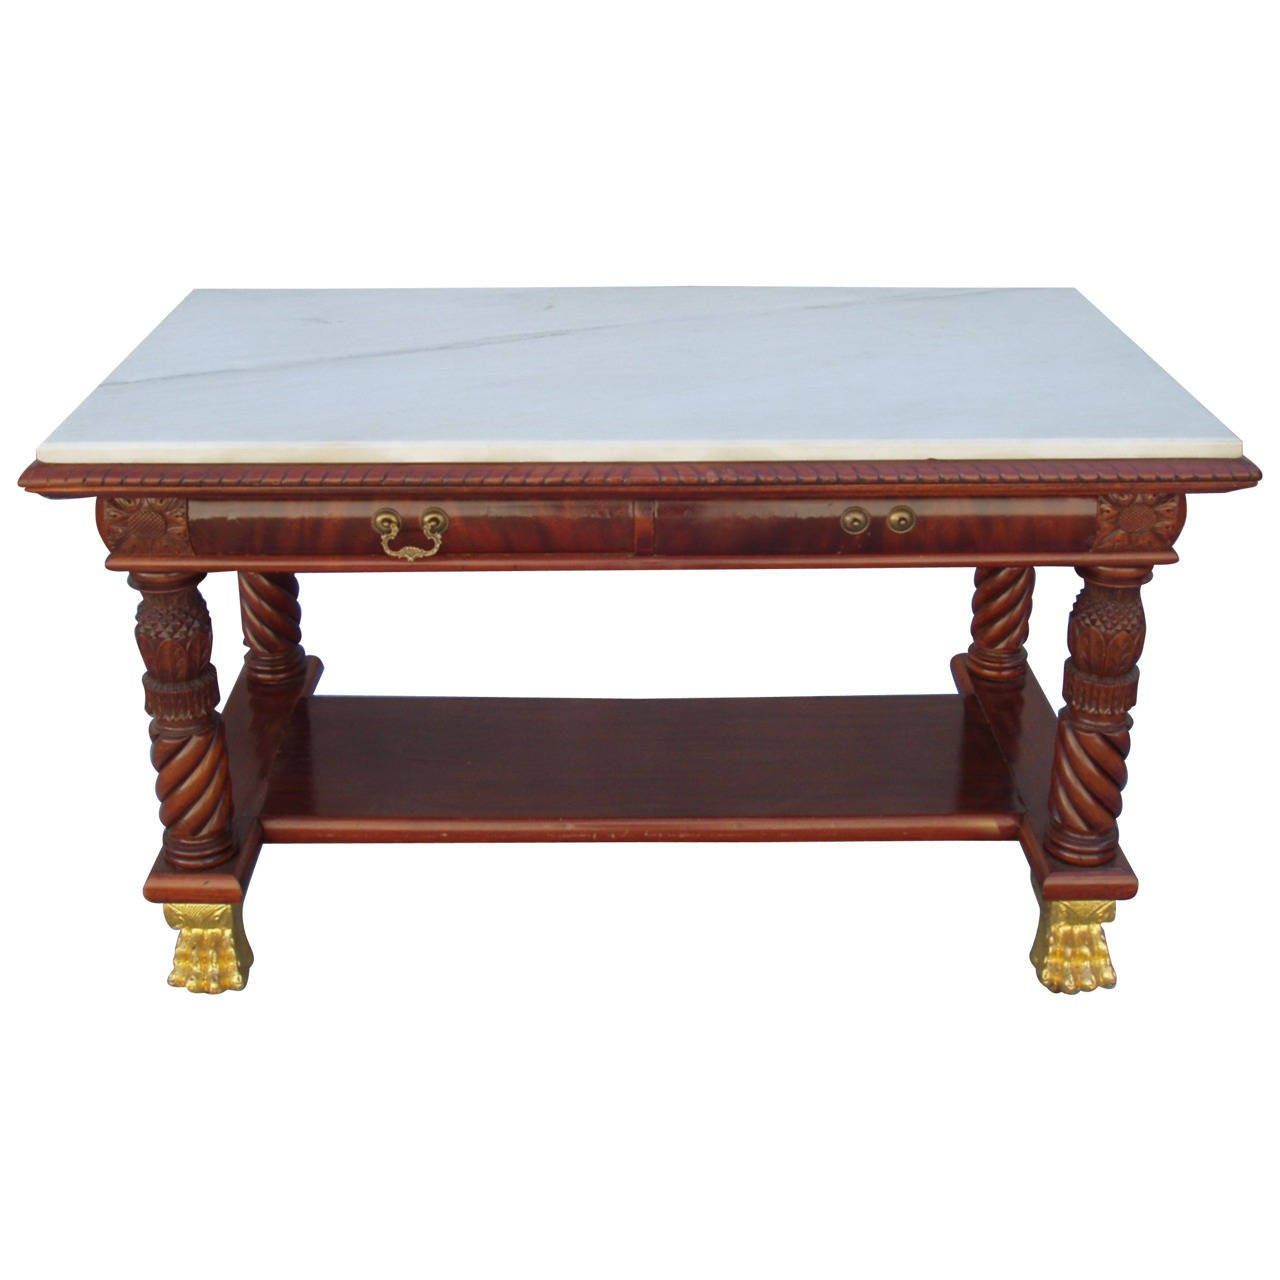 Superb Museum Piece American Library Table Desk -19th century